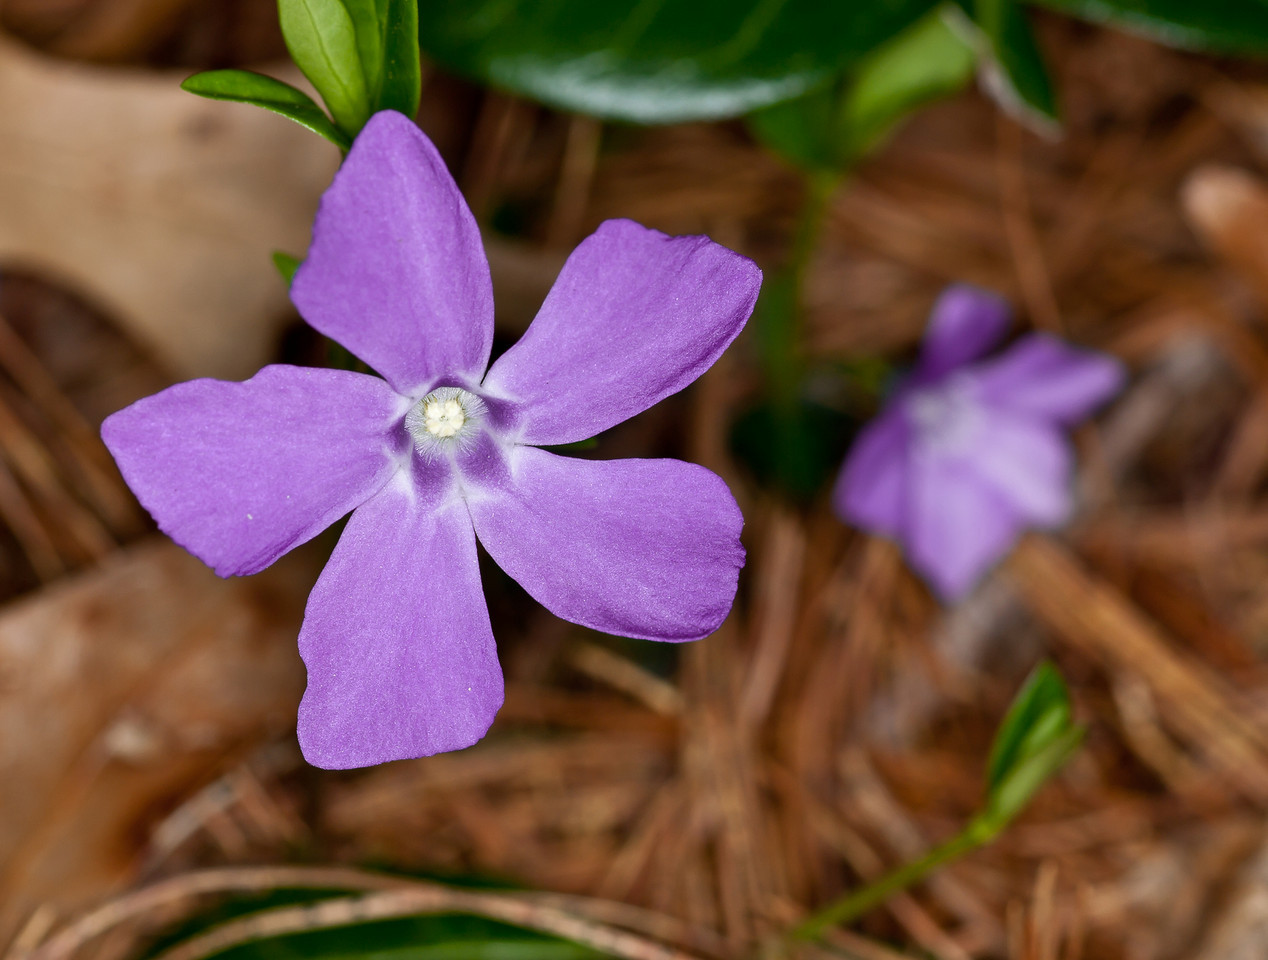 Vinca Minor aka Periwinkle is one of my favorite ground covers.  I sort of hope it takes over my lawn.  Who needs lawn?  OM 90mm macro & T10 Ring Flash, probably f8